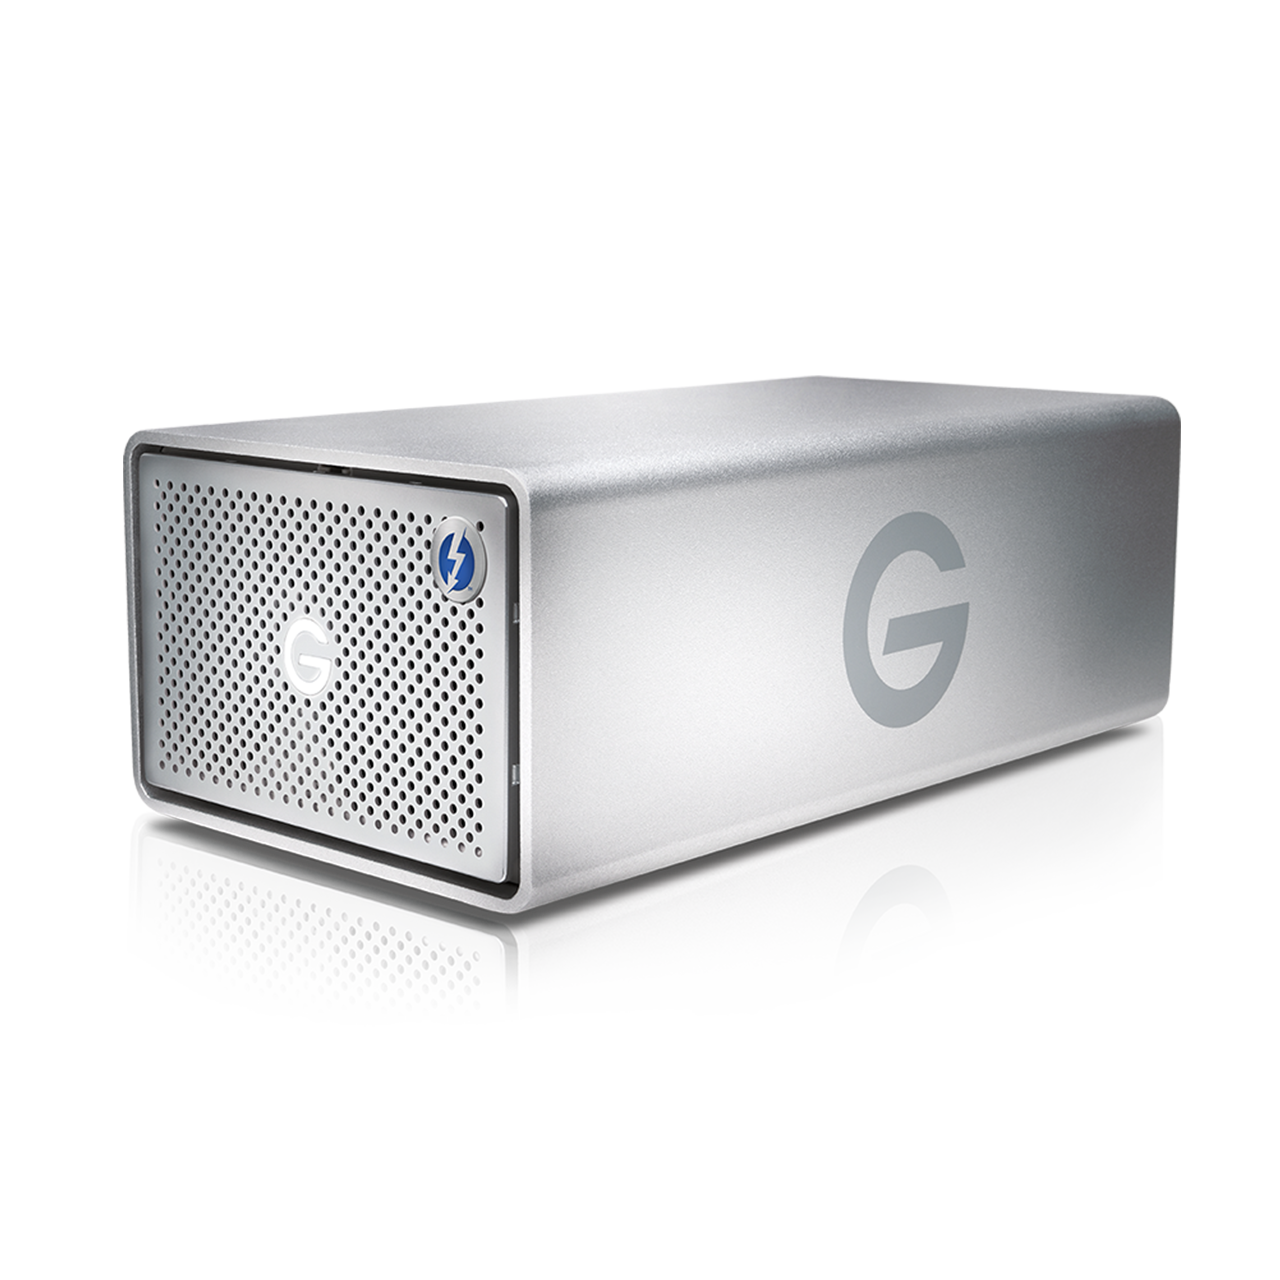 G-RAID Removable Thunderbolt2 USB3.0  20TB Silver  JP (G-Technology)